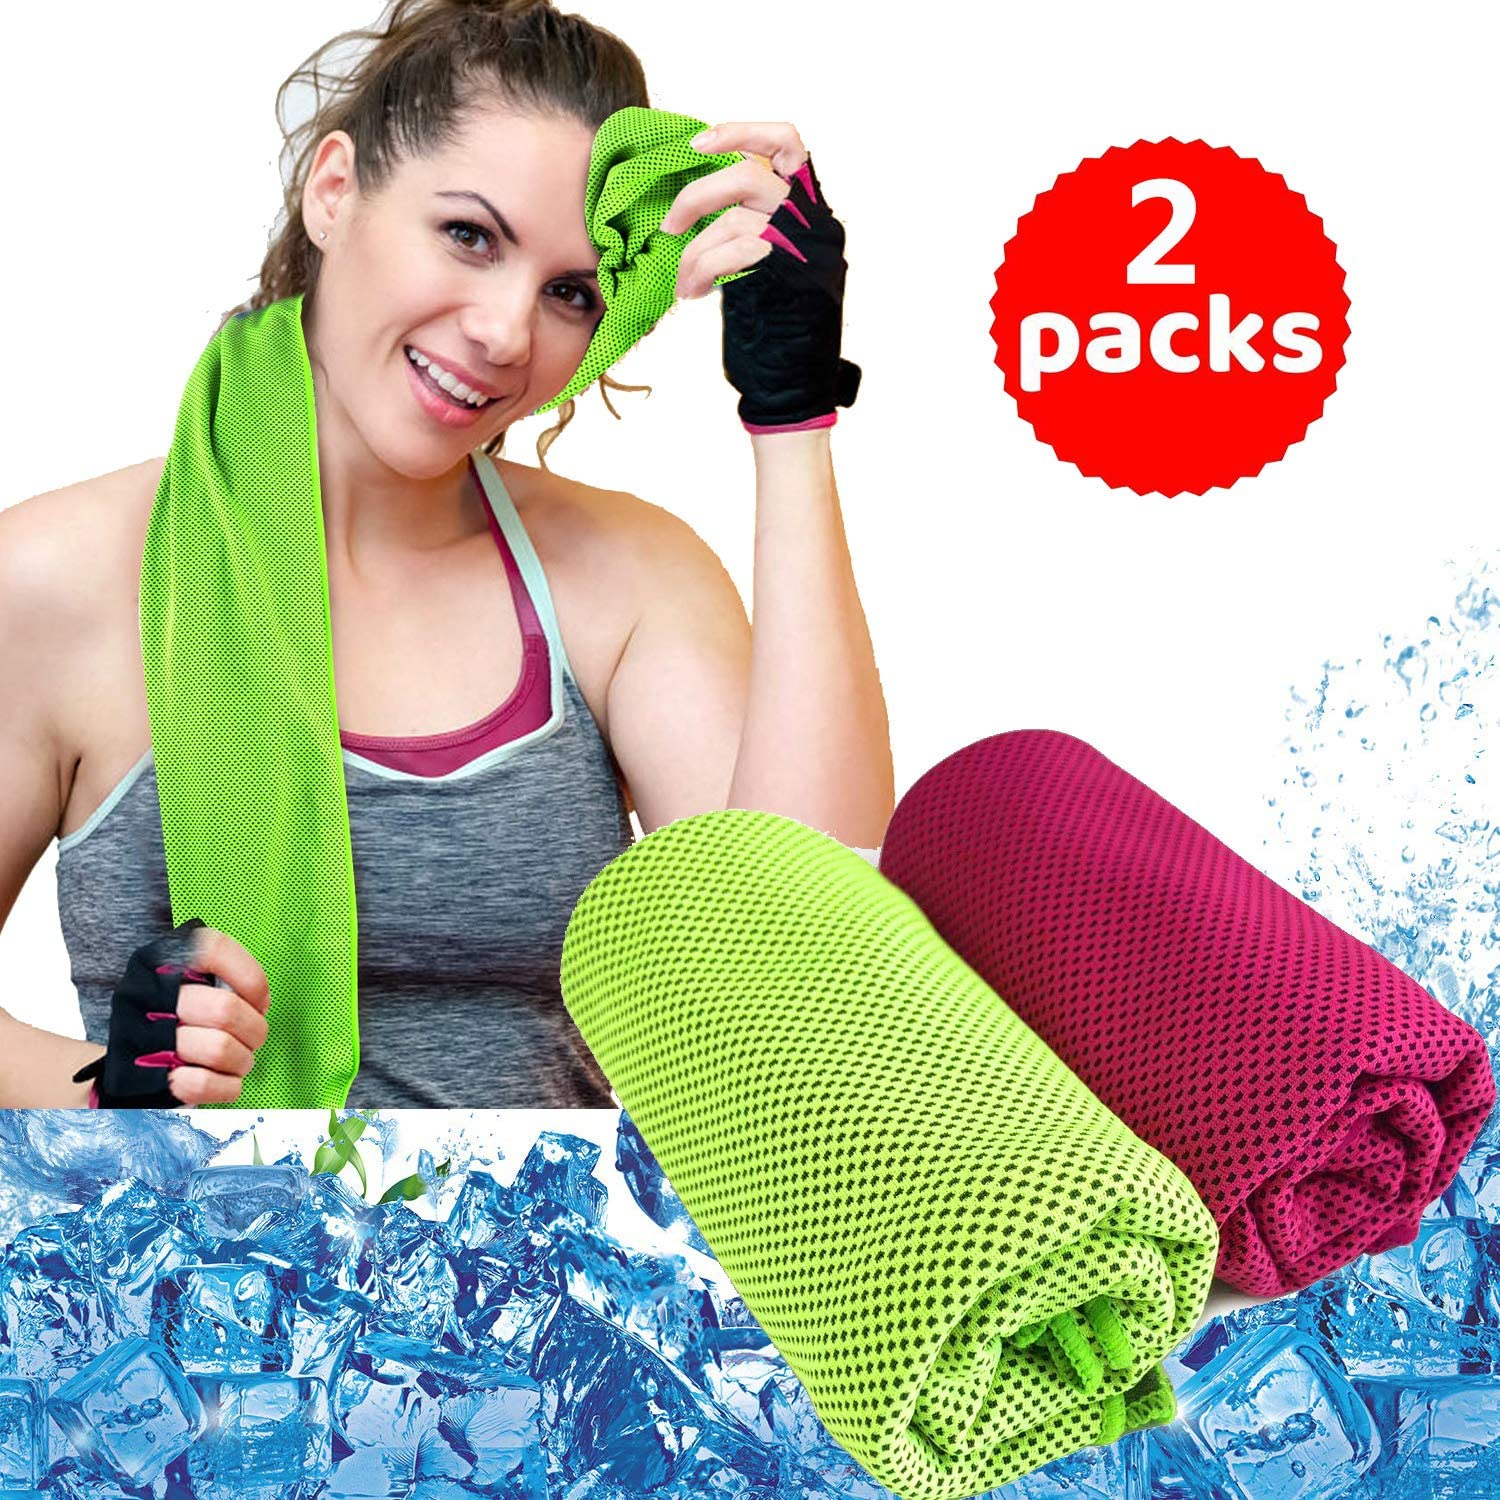 Sport Towel,Cooling Towel, Ice Towel for Neck Instant Cooling, Chilly Towel for Men Women Kids, Super Absorbent Microfiber Towel for Athletes, Workout, Sports, Camping